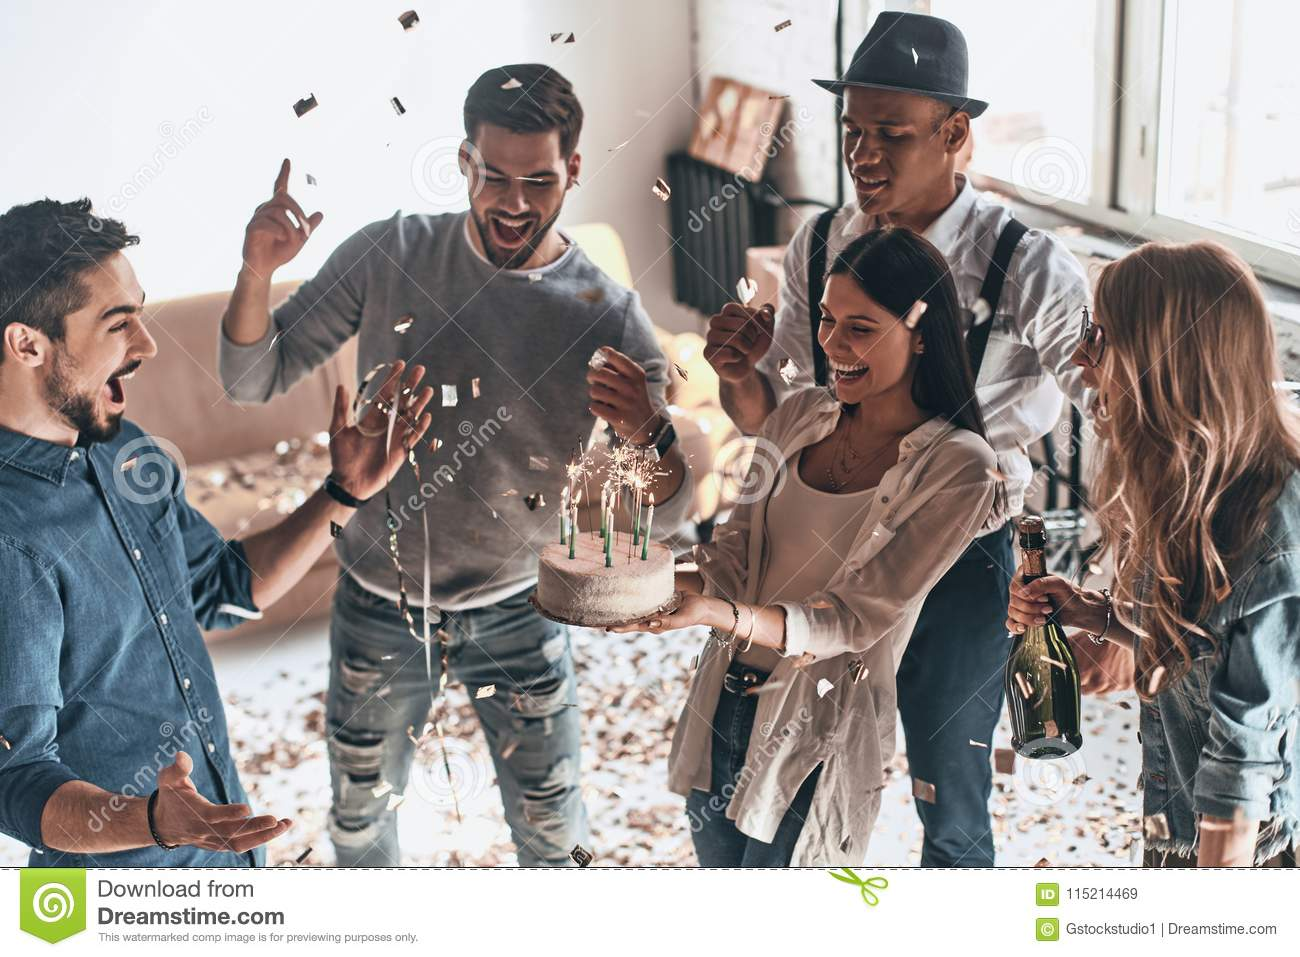 Time for a birthday cake. Top view of happy young man celebrating birthday among friends while standing in room with confetti fly